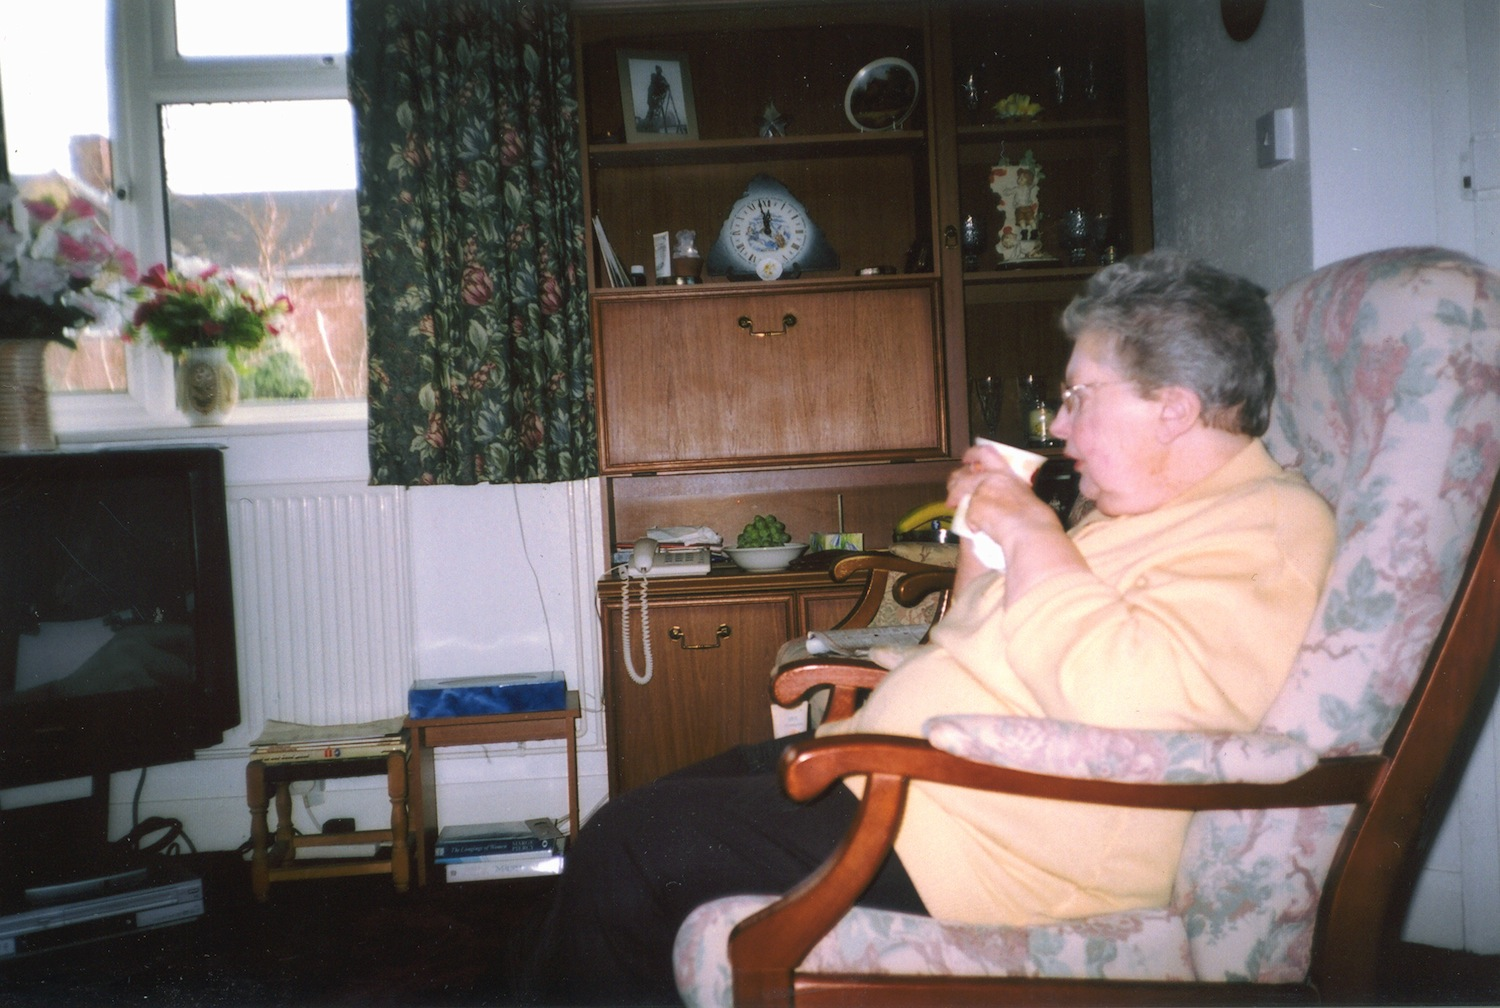 This is my Mum. It is a contented and peaceful photo. My Mum has coped with a lot. Her first husband was killed in the war and my father suffered with a mental illness. My mother cared for me and then for me when I was ill. I need support but what about care for the carer?  (c) Terry / United Response / PhotoVoice